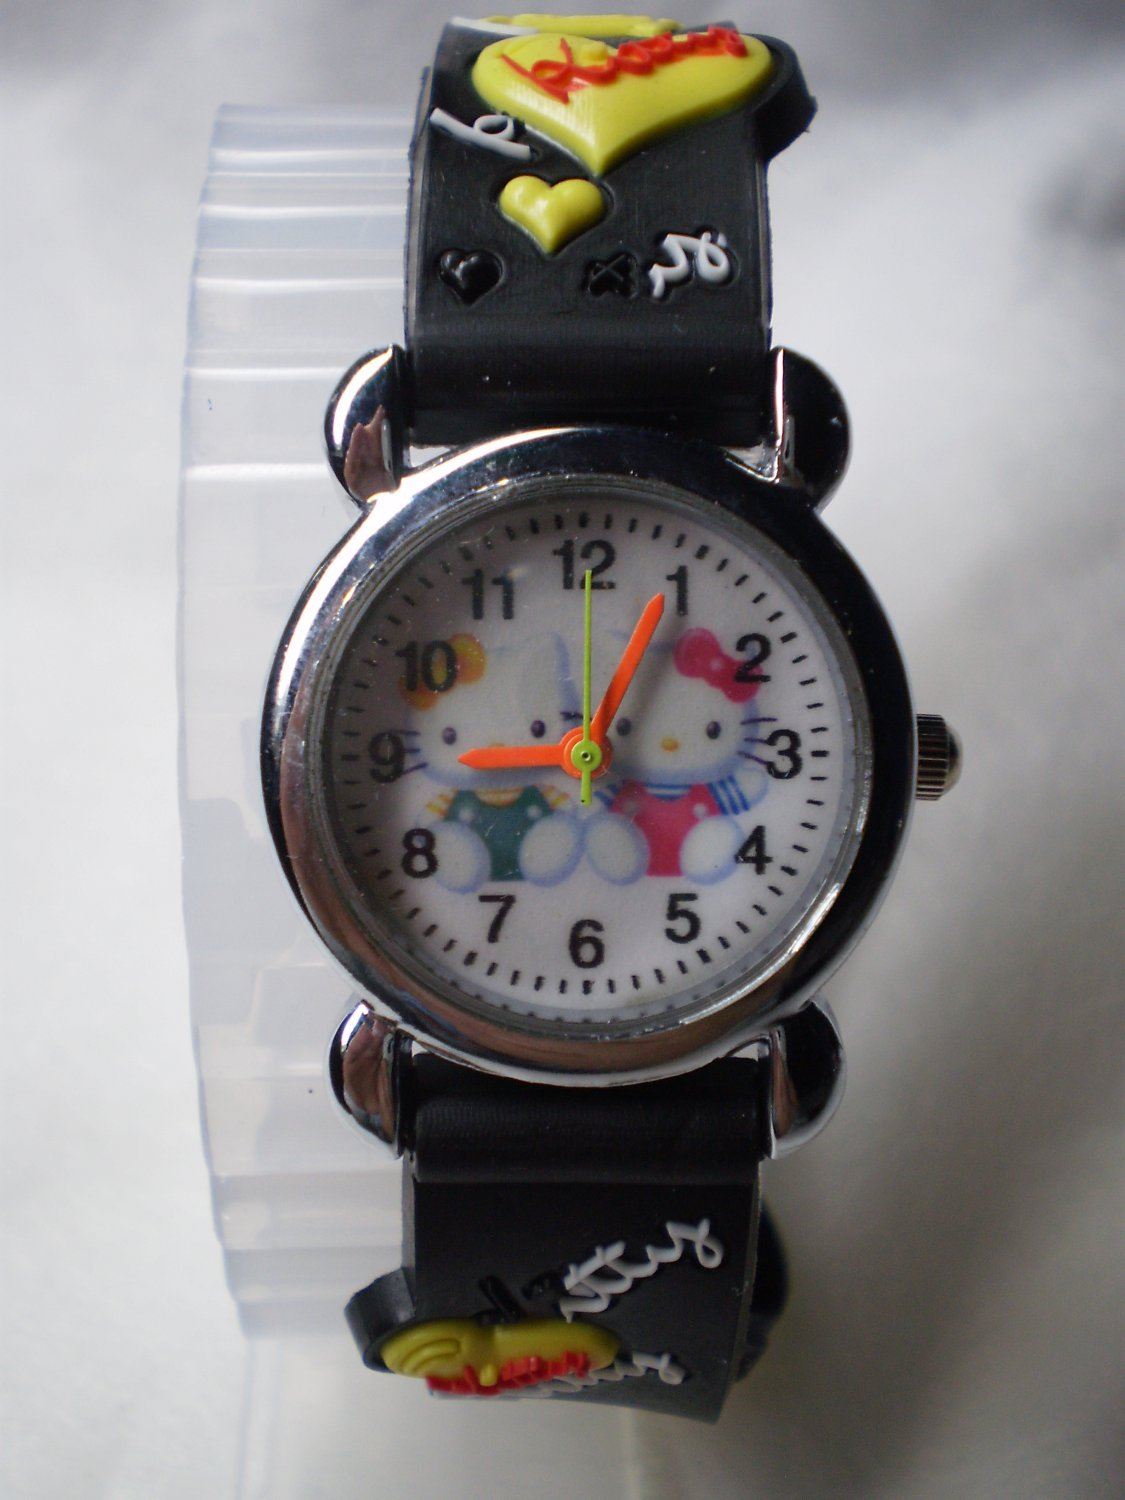 Hello Kitty 3 dimensional wrist children watch with black rubber band